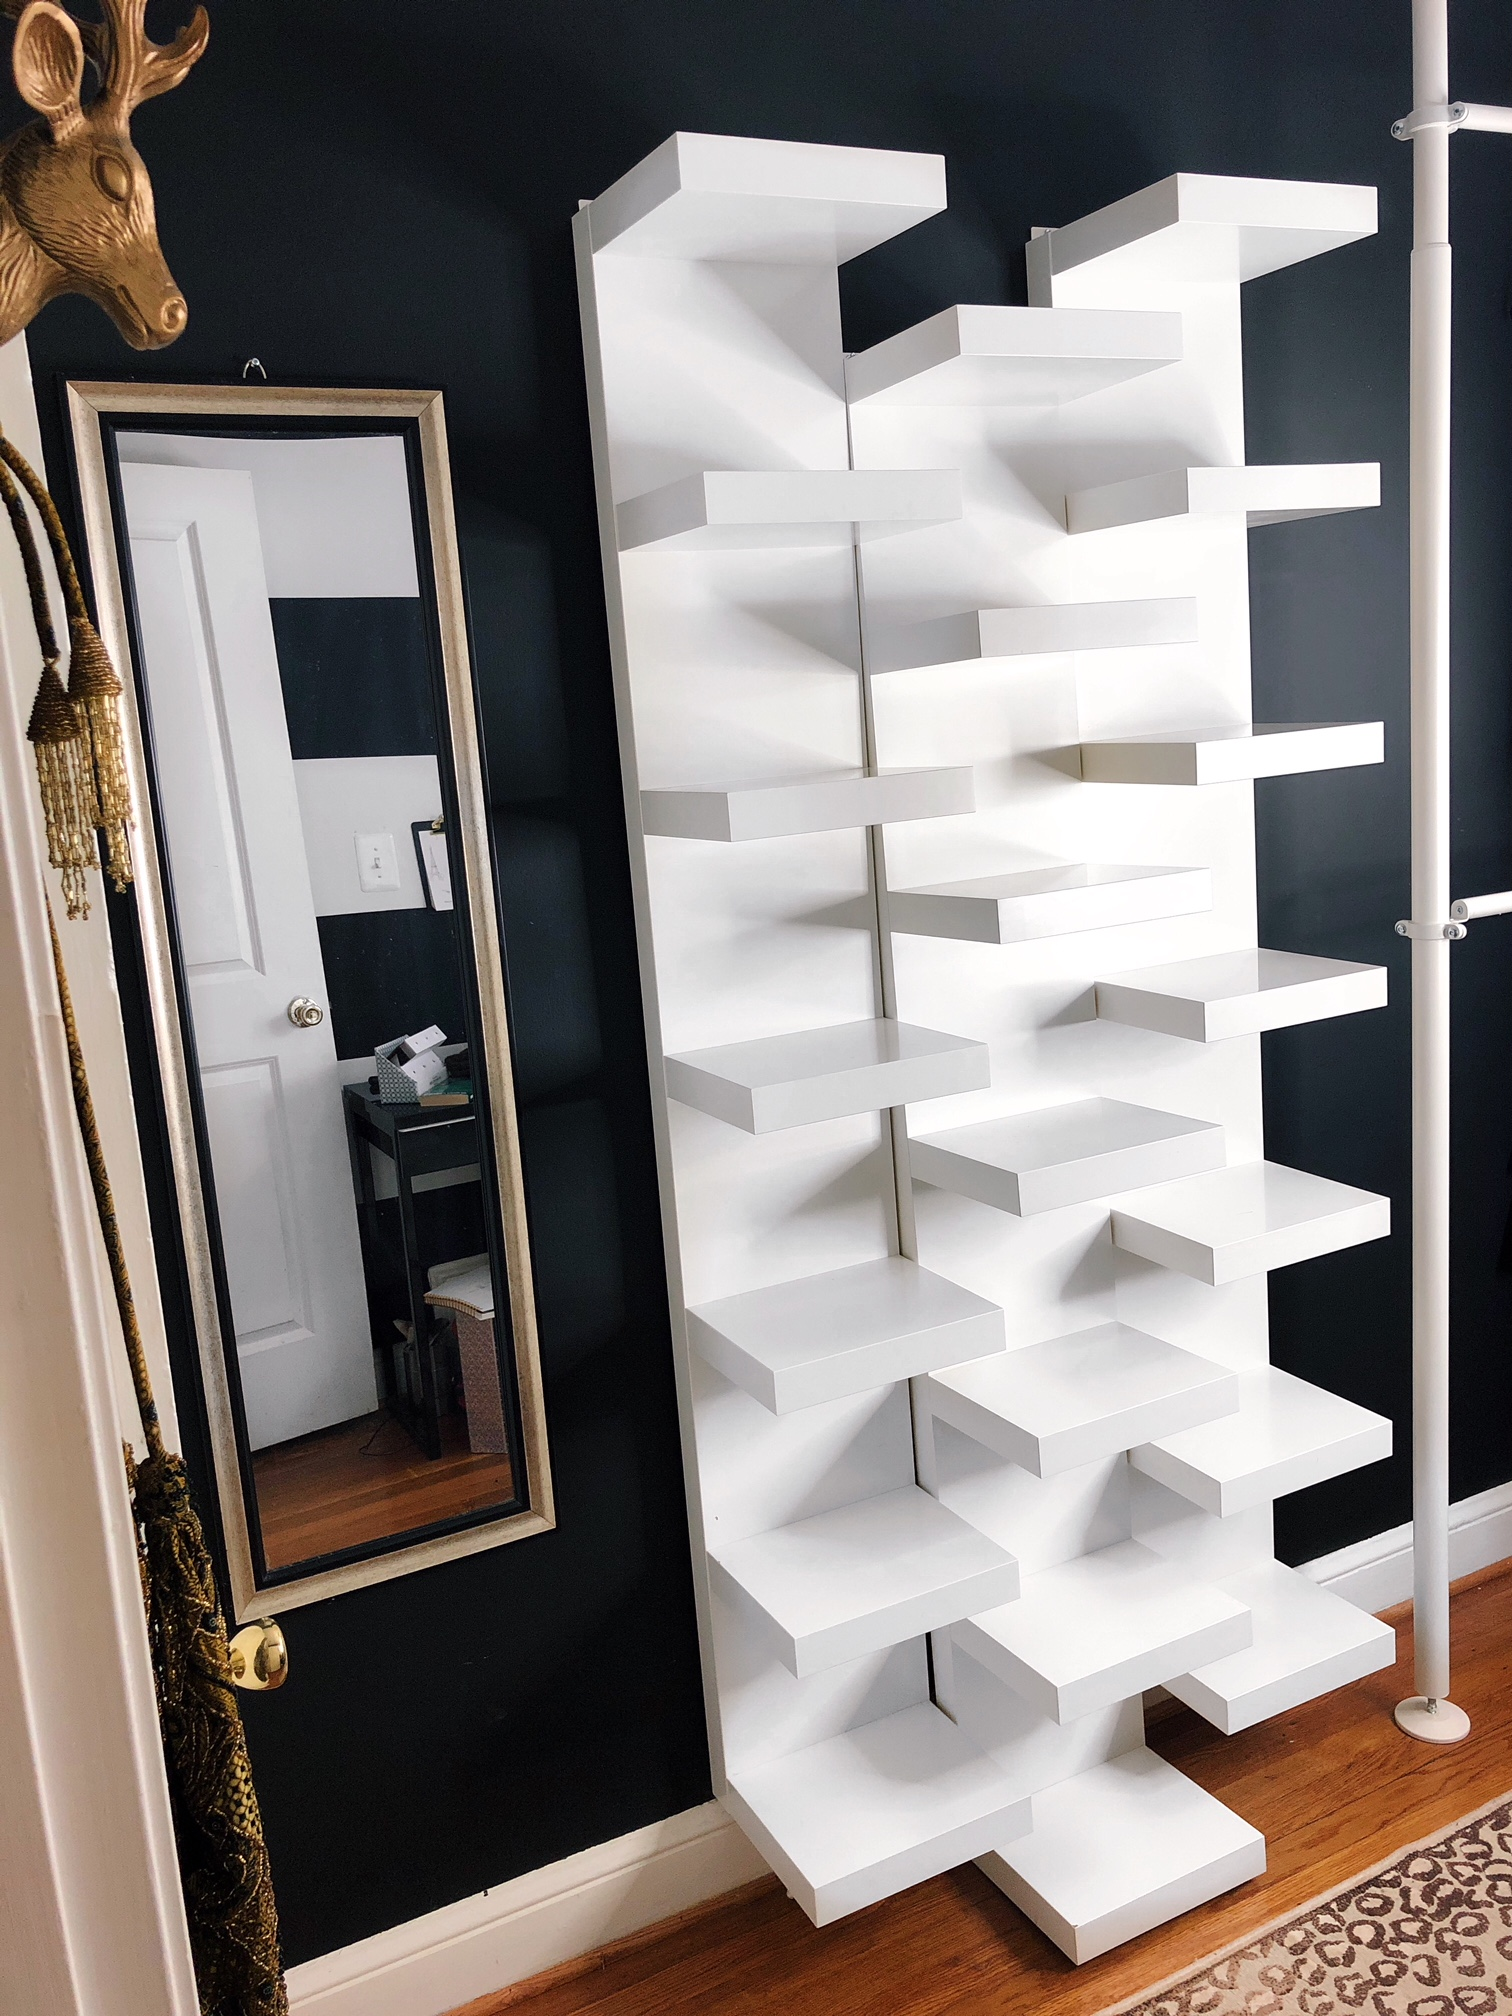 the ultimate shoe organization for small spaces wall floating shelves shoes empty using ikea lack shelf storage corner unit block paving solar lights wooden shelving white living